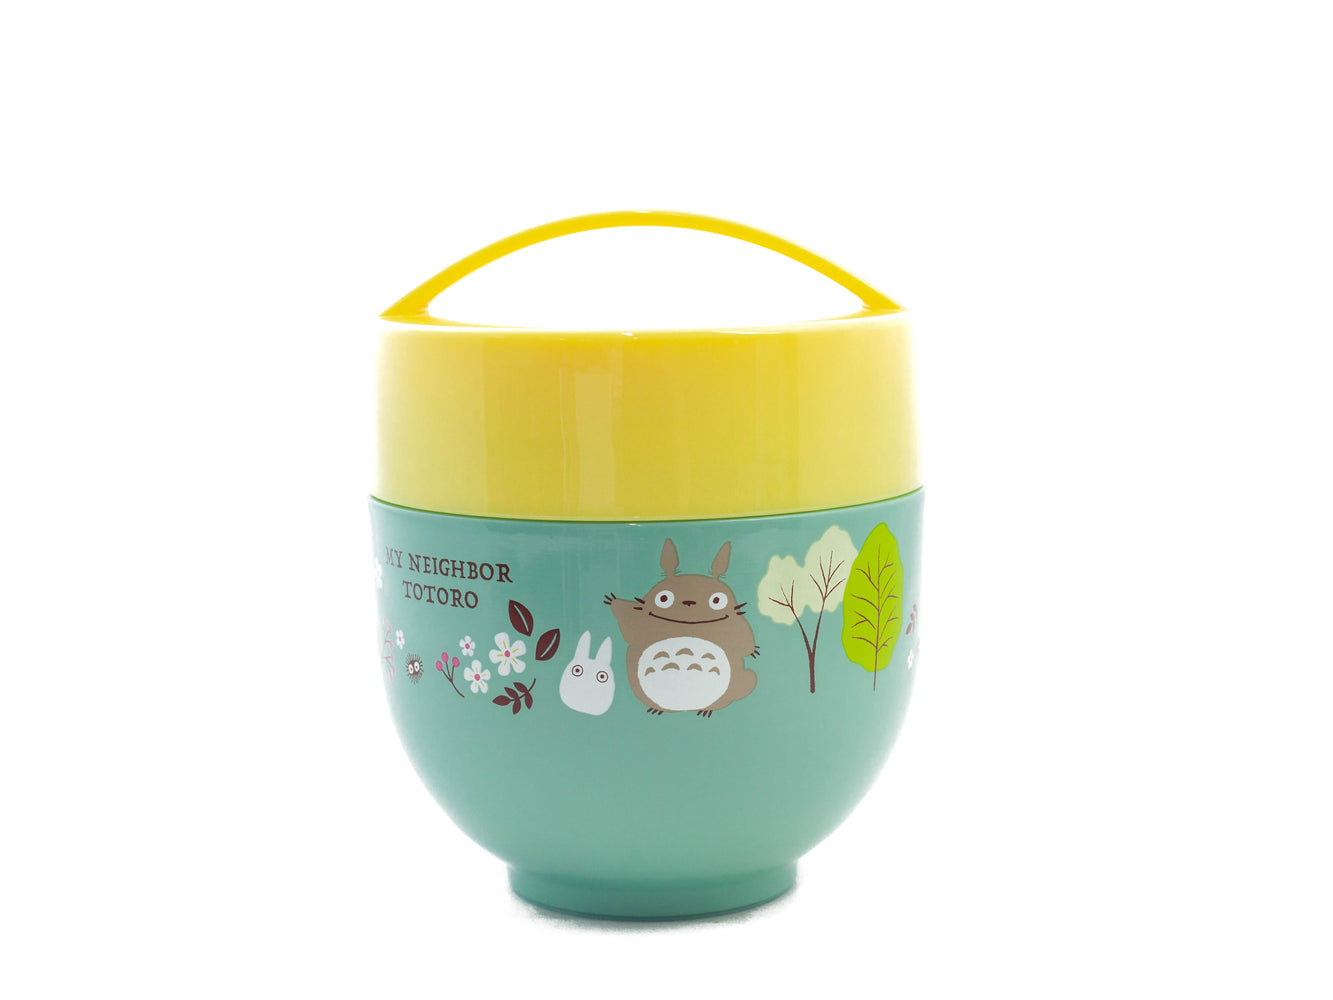 Totoro Field Insulated Lunch Bowl by Skater - Bento&co Japanese Bento Lunch Boxes and Kitchenware Specialists